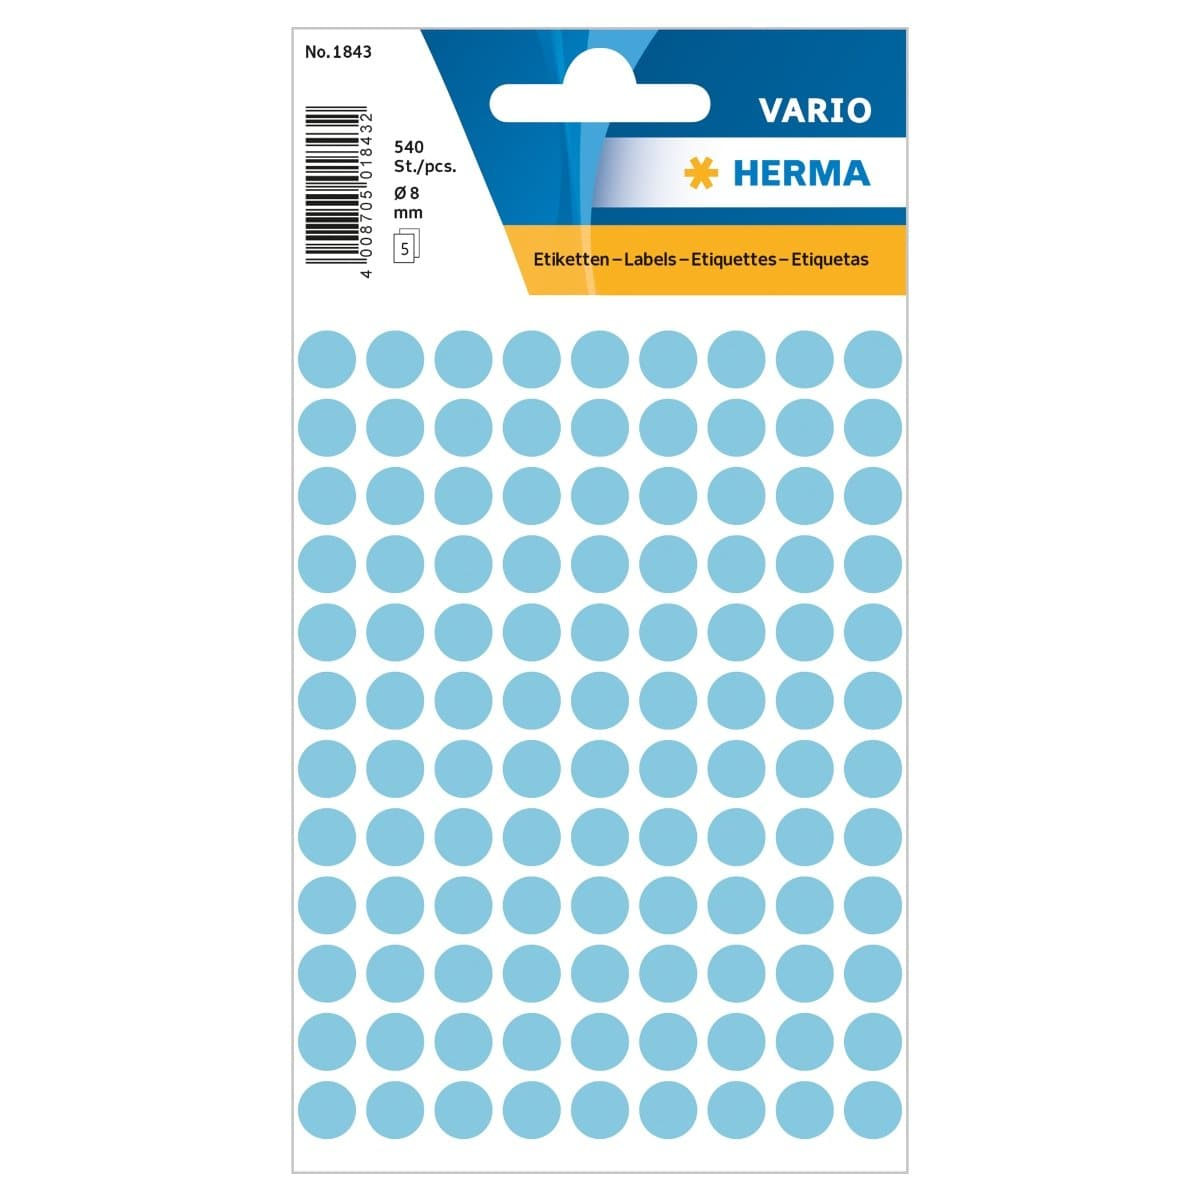 Herma Vario Sticker Color Dots, 8 mm, 540/pack, Blue